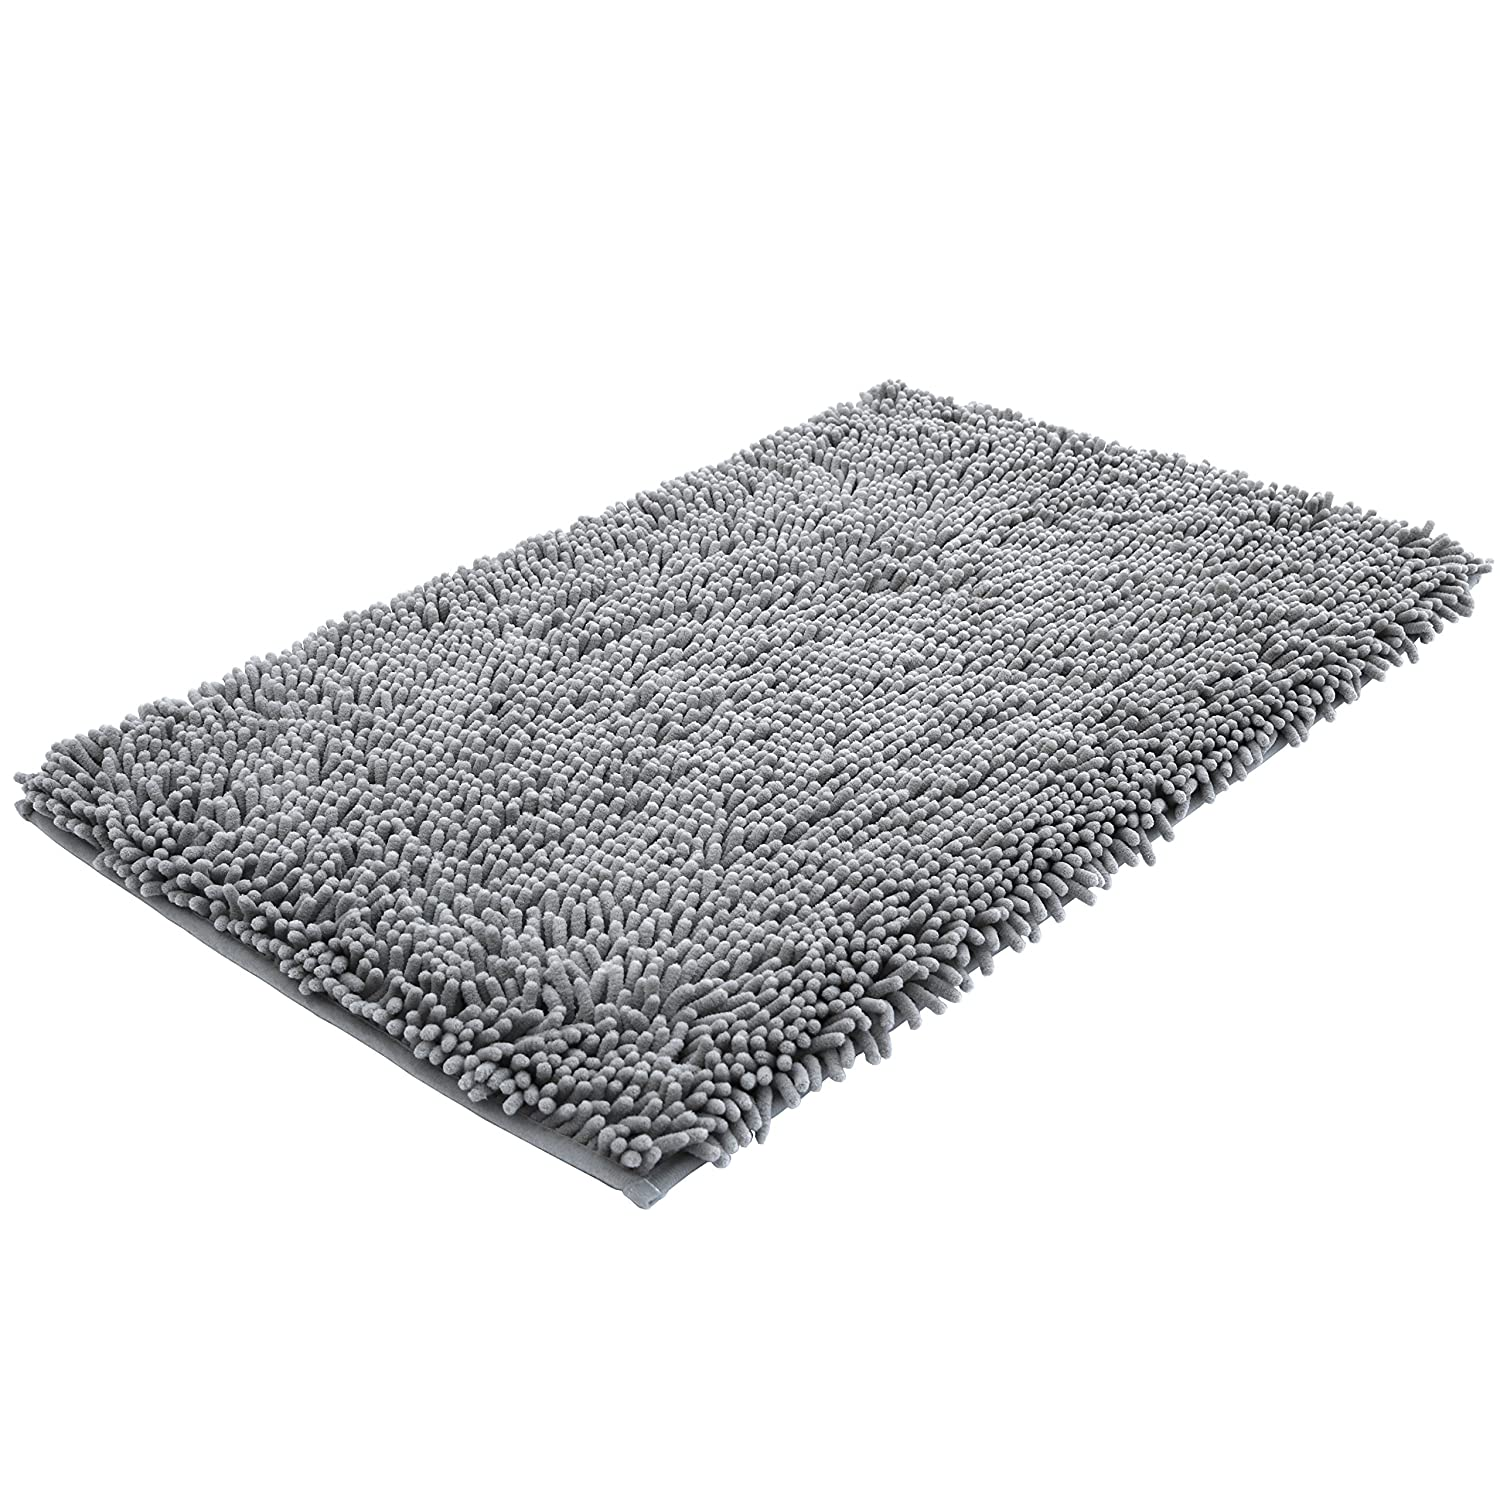 Amazoncom Super Soft Bath Mat Microfiber Shag Bathroom Rugs Non - Black chenille bath rug for bathroom decorating ideas